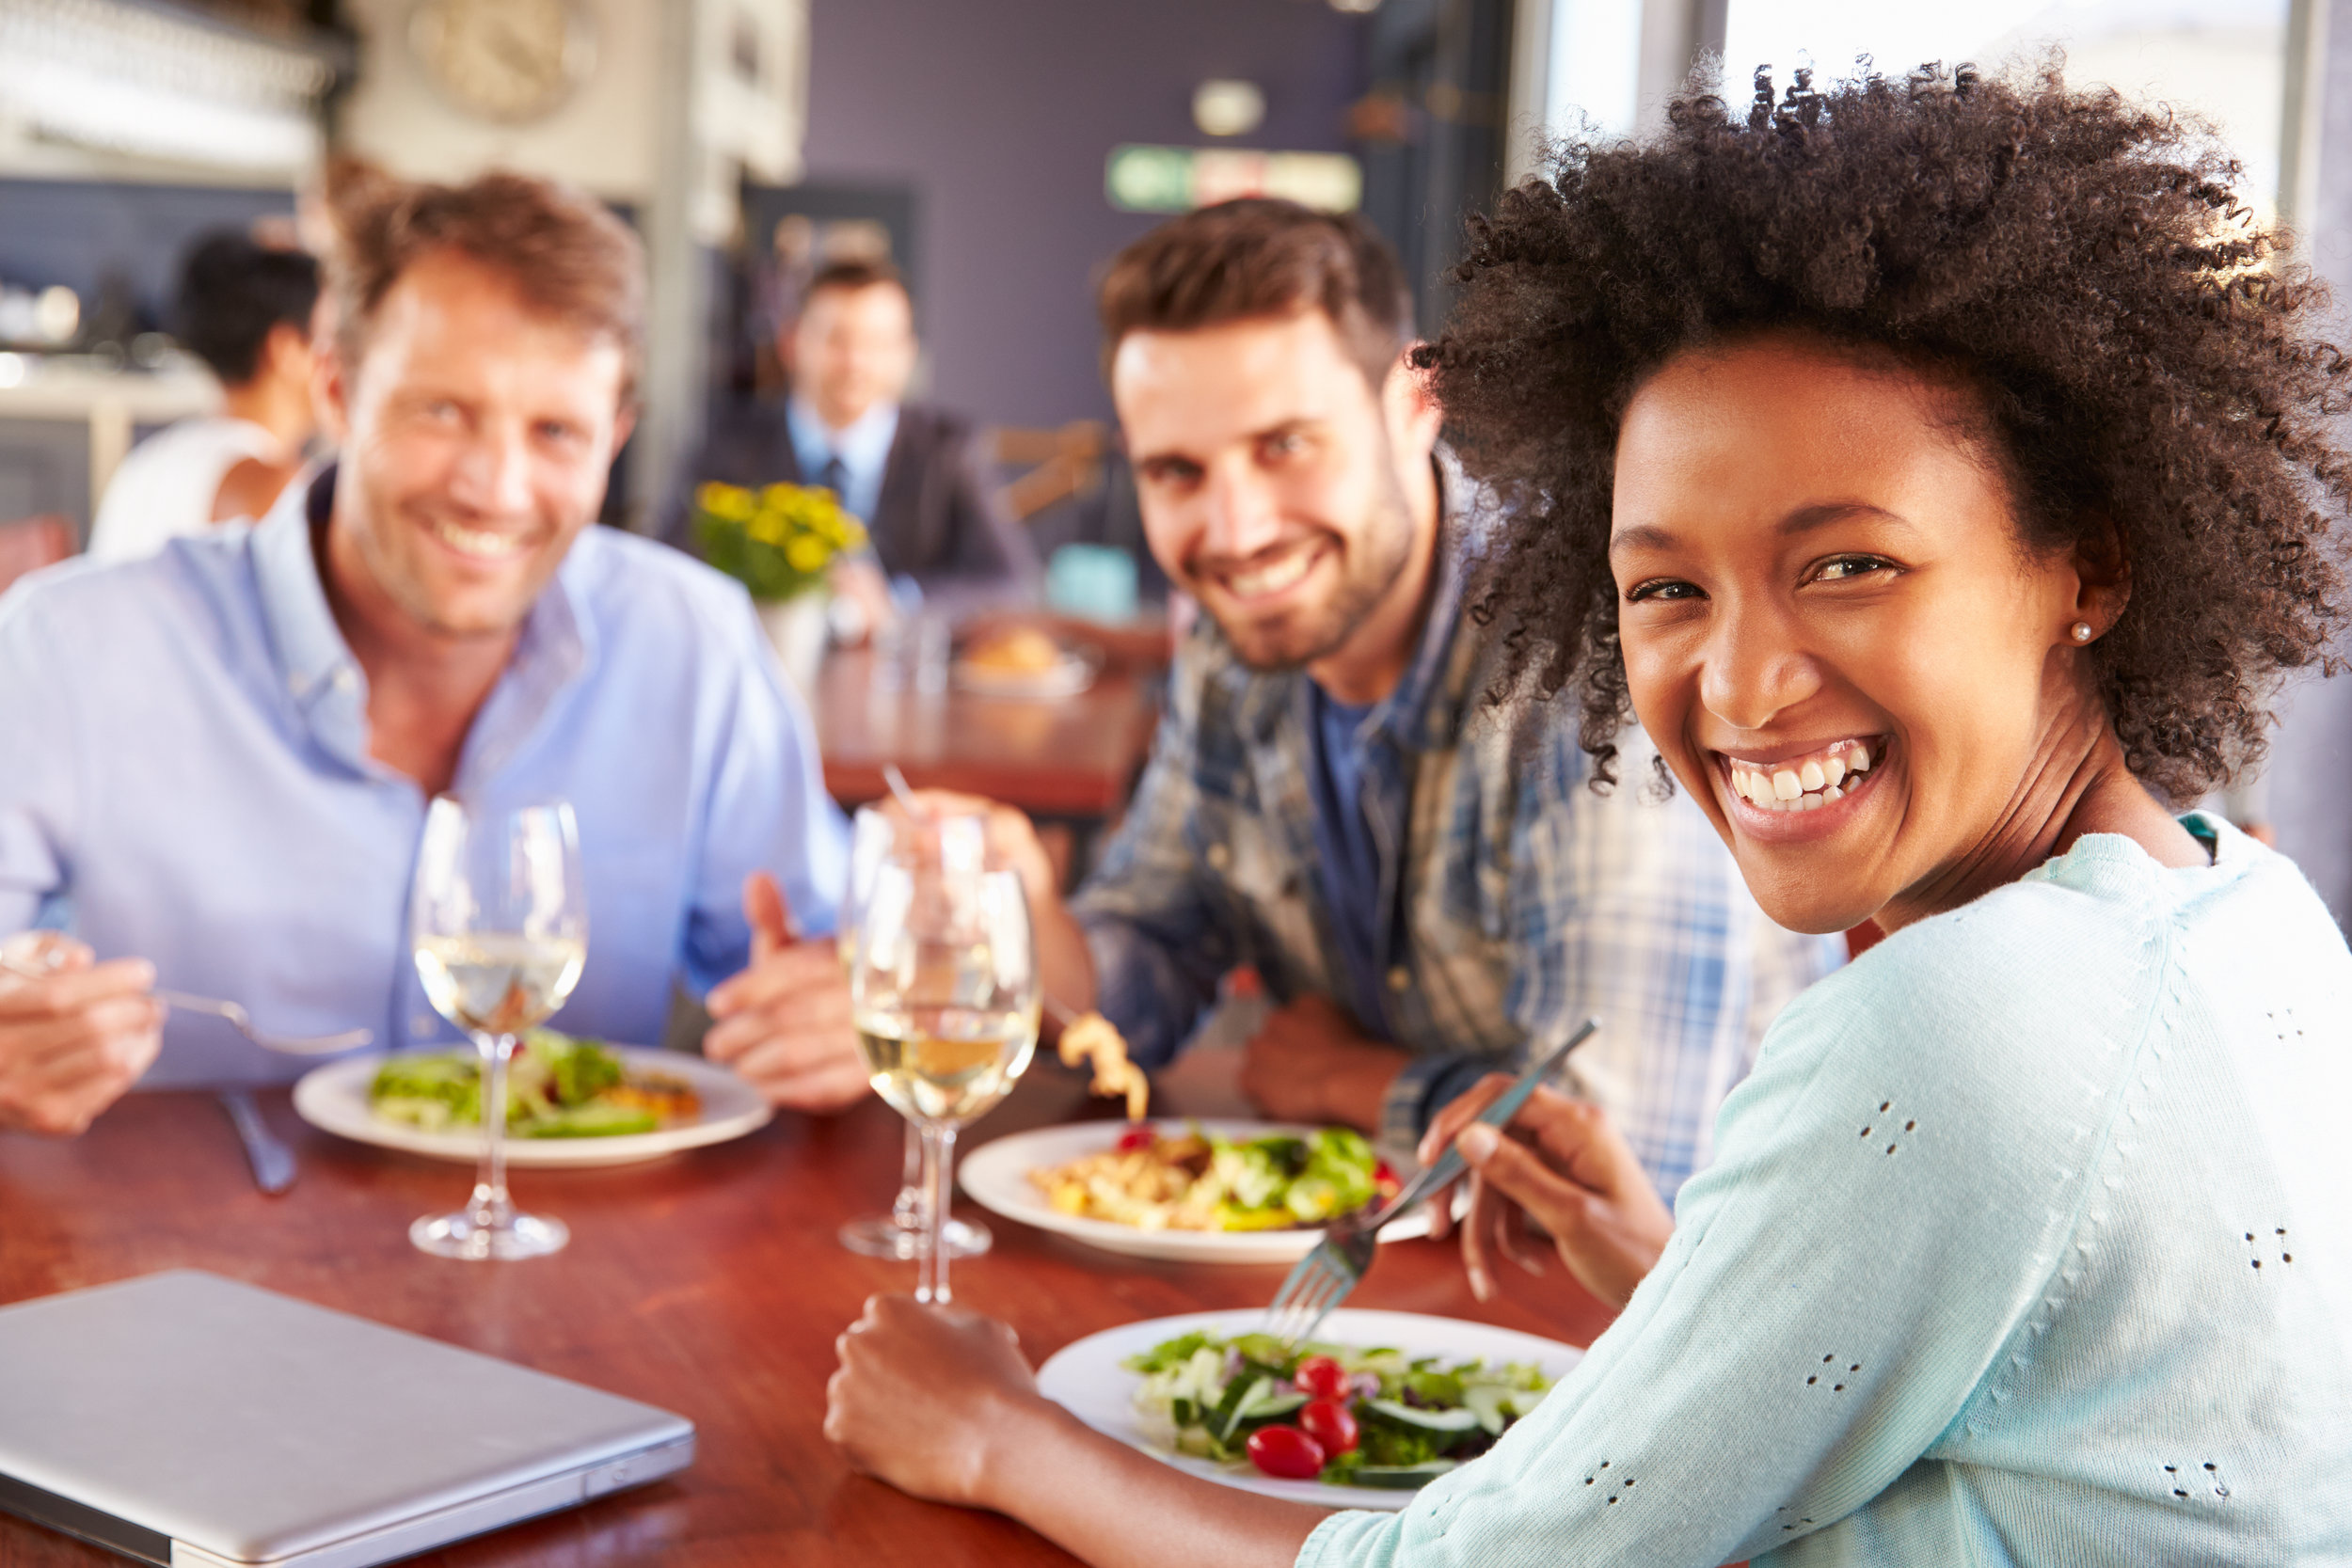 bigstock-Group-of-friends-at-lunch-in-a-94344242.jpg